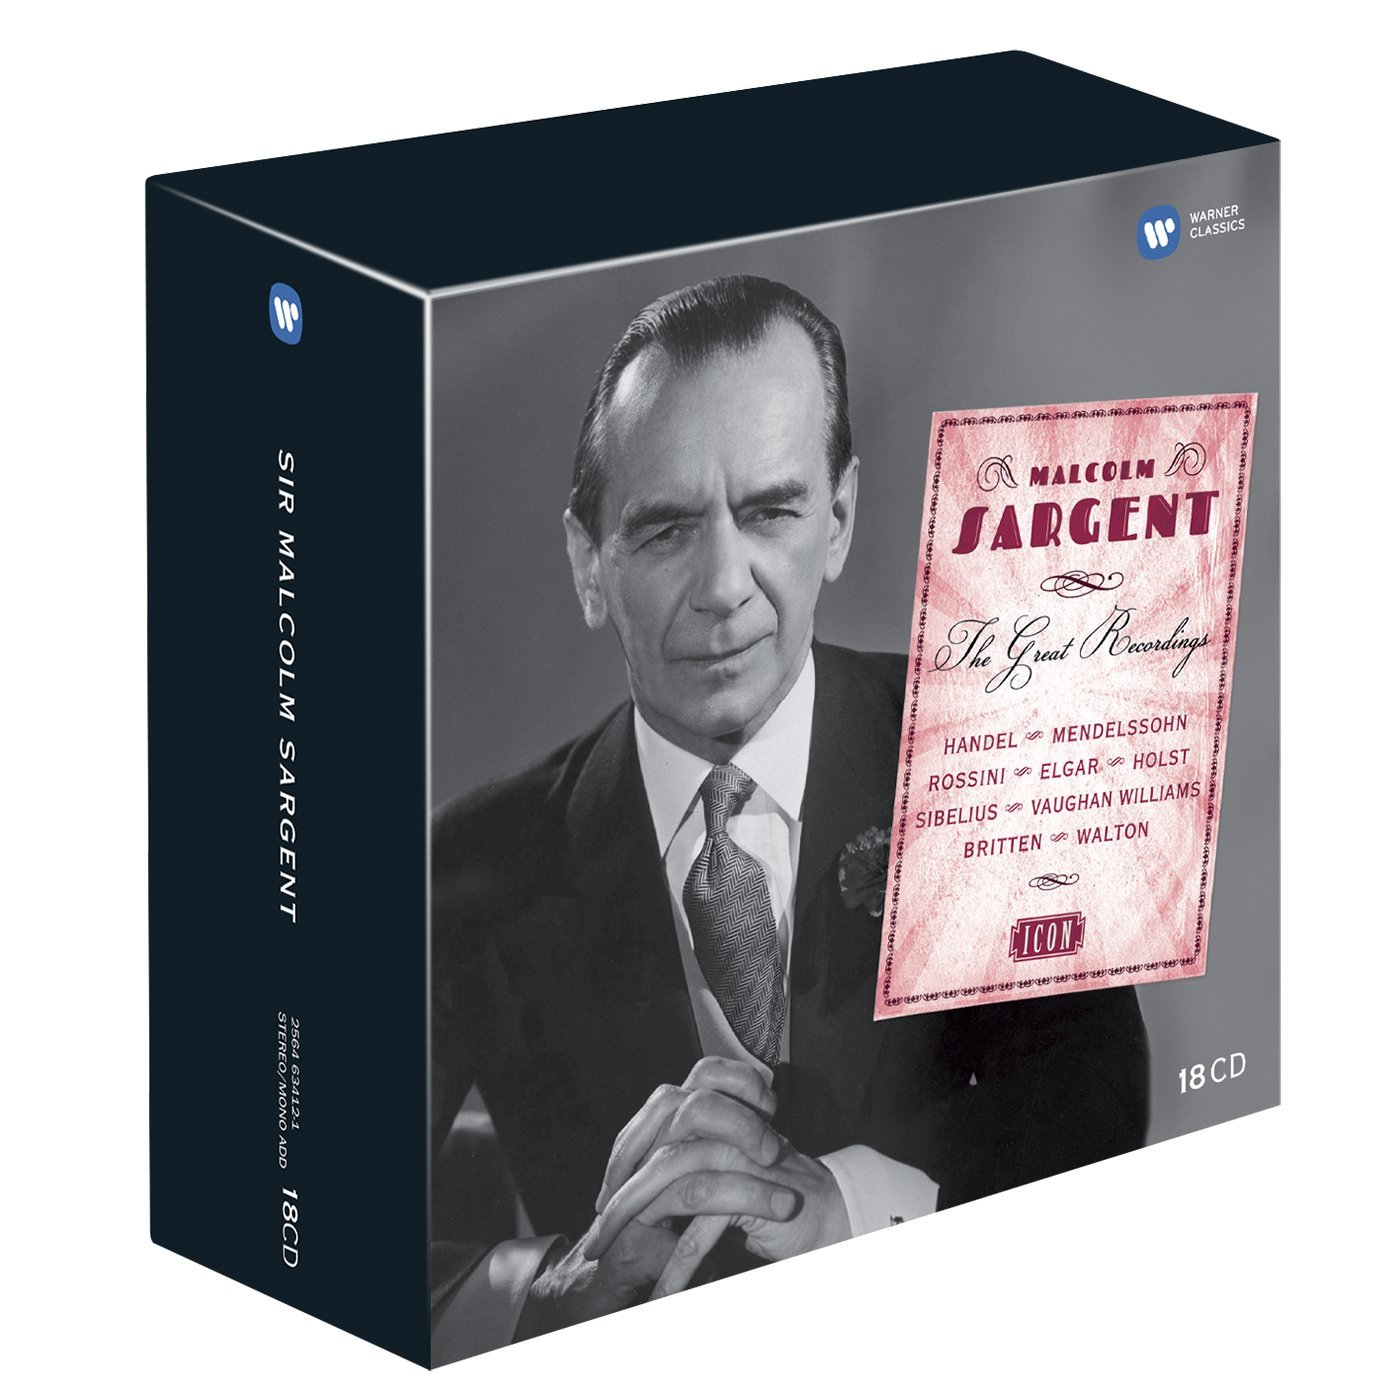 Sir Malcolm Sargent - Stereo Strings